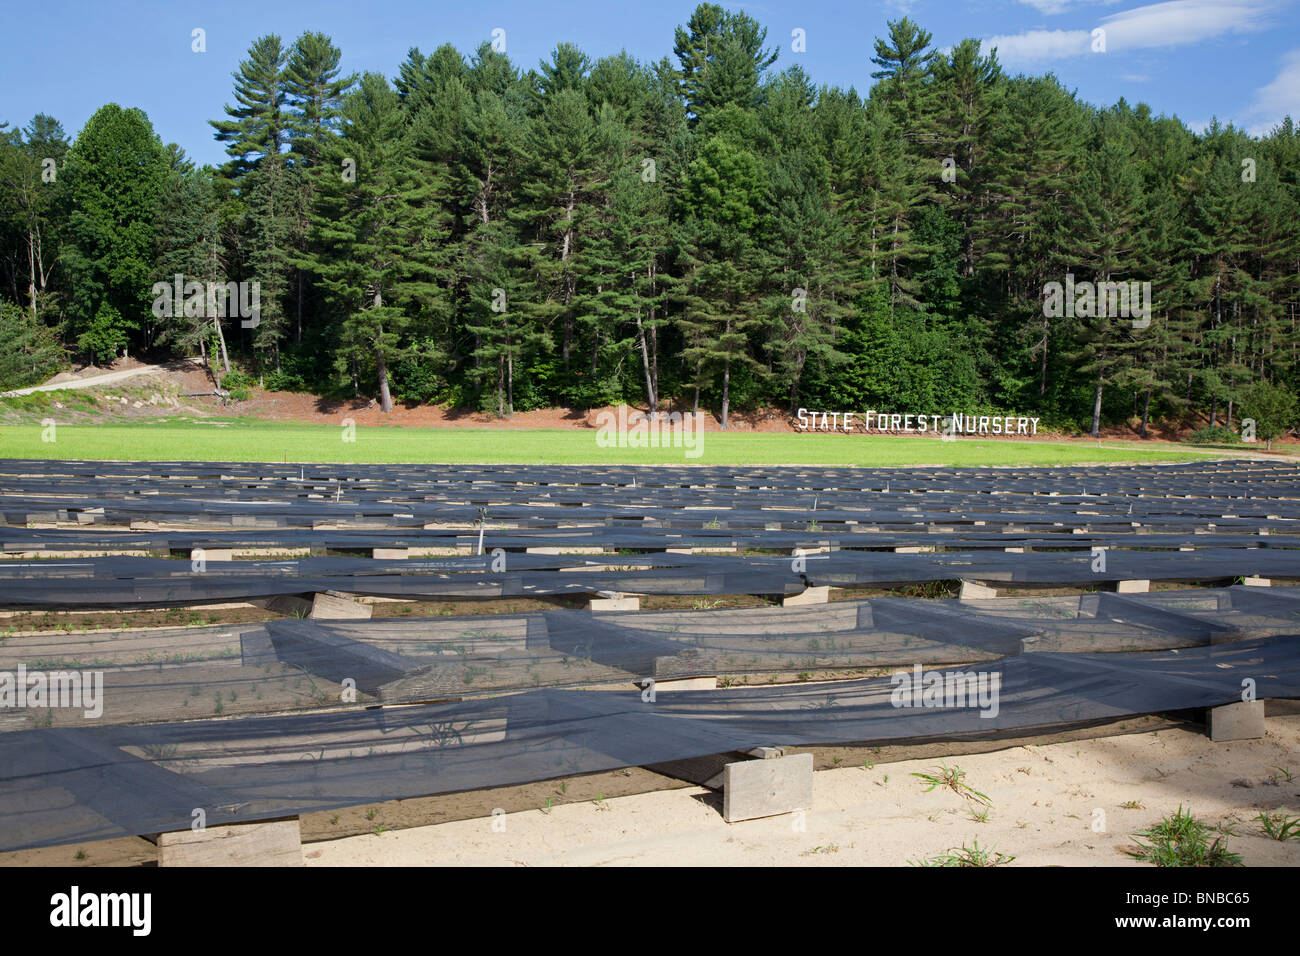 The New Hampshire State Forest Nursery Stock Photo